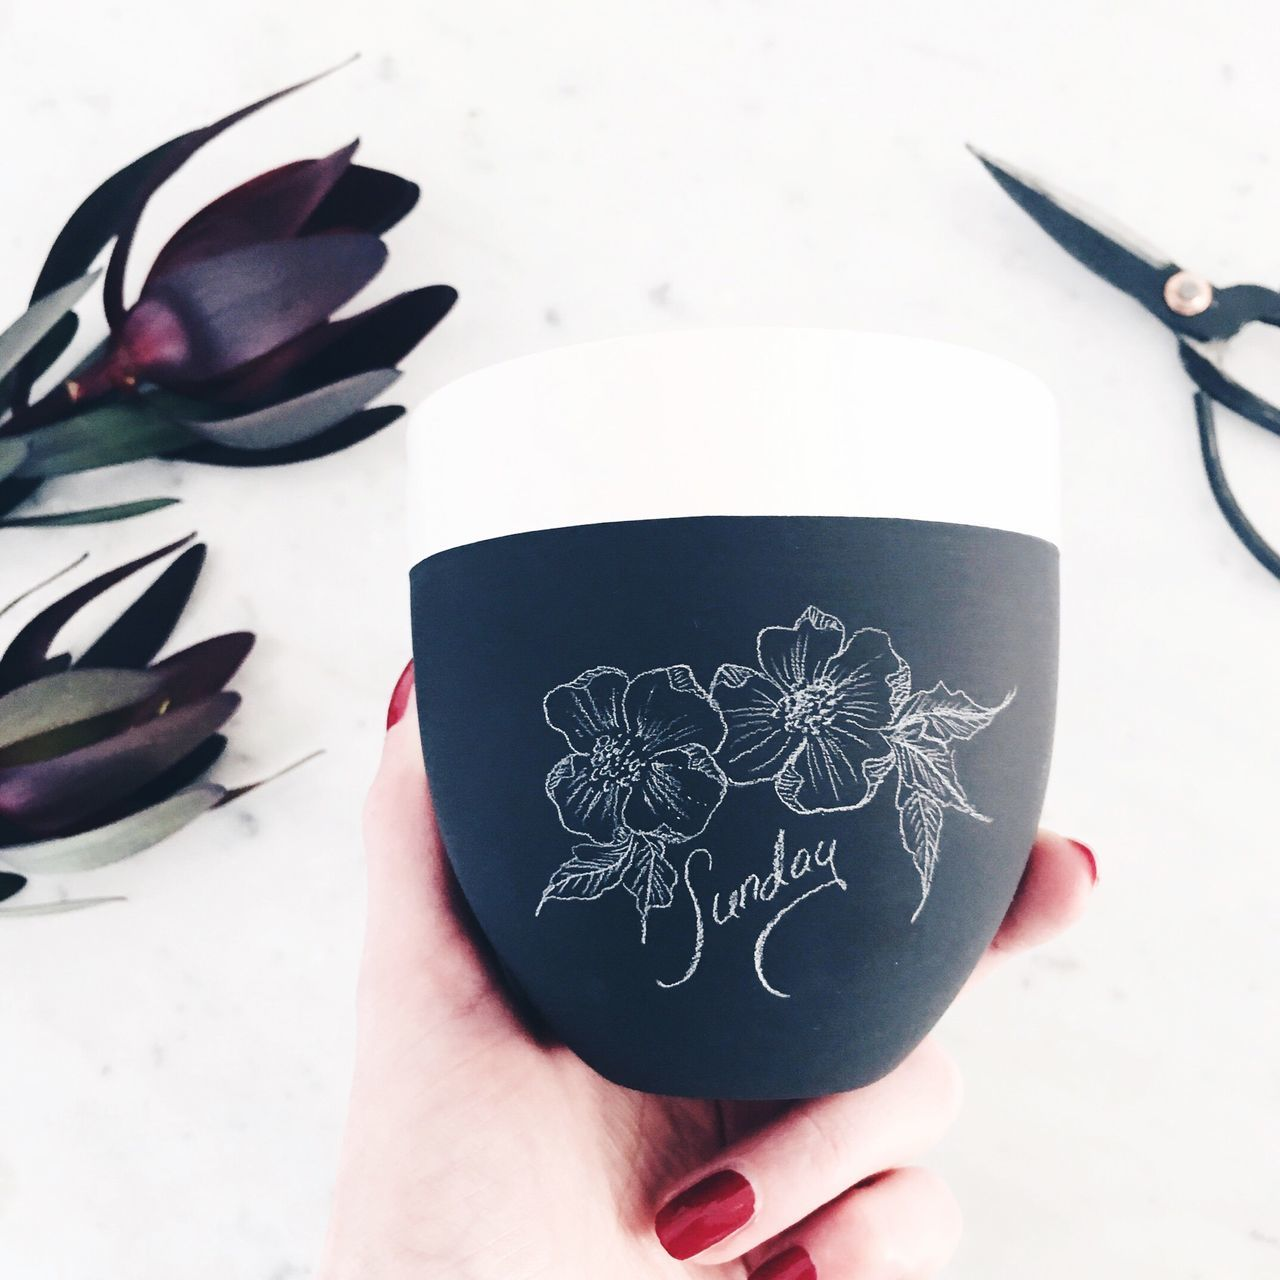 Nature Human Hand High Angle View Food And Drink Lifestyles Table Home Interior Pottery Illustration Art ArtWork Vscocam VSCO EyeEm Best Shots EyeEm Gallery Sunday Moody